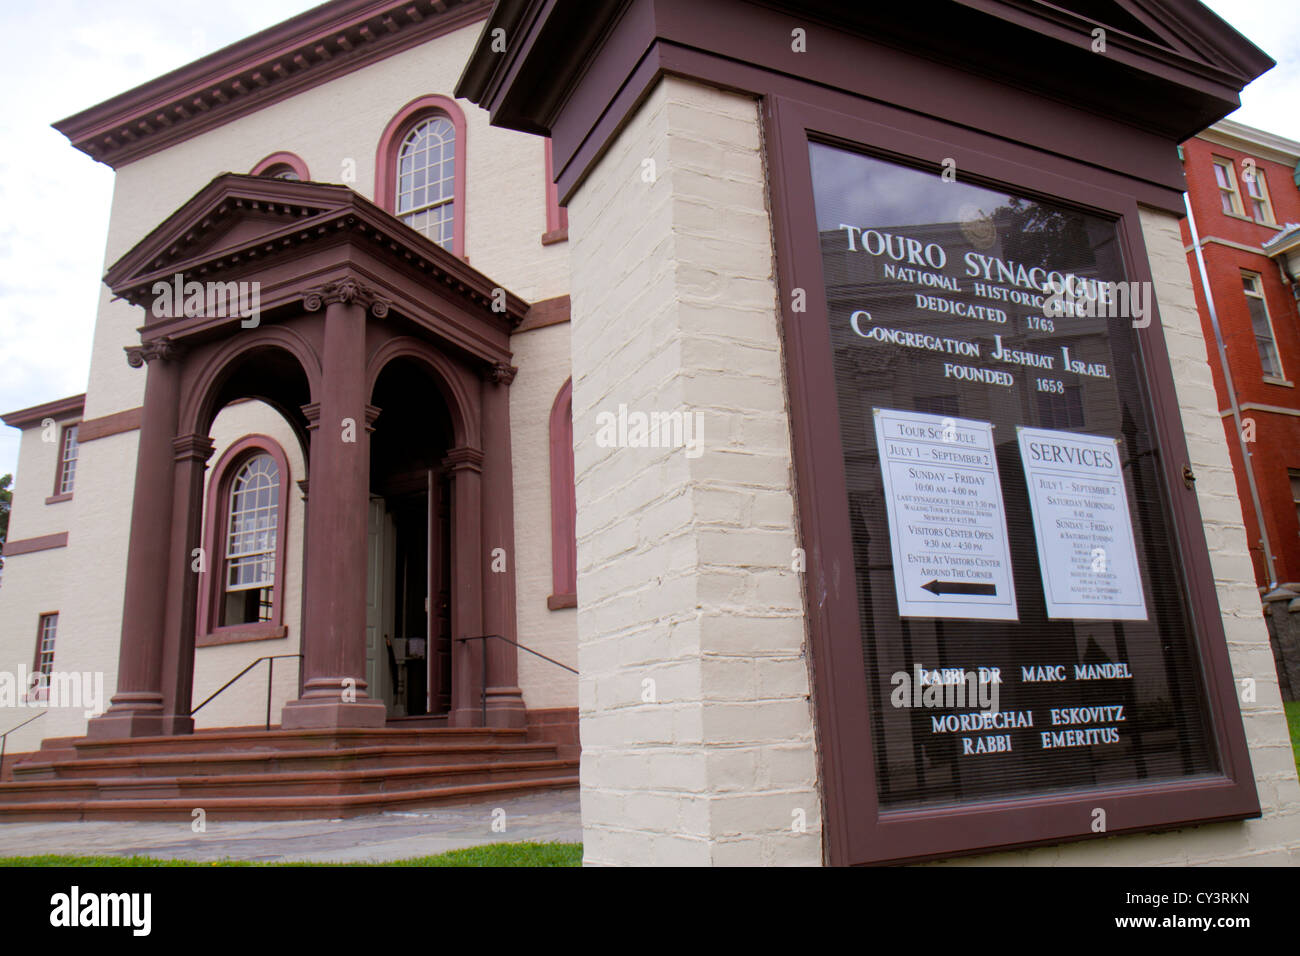 Rhode Island Newport Patriot's Park sign Touro Synagogue National Historic Site 1763 US oldest synagogue building - Stock Image